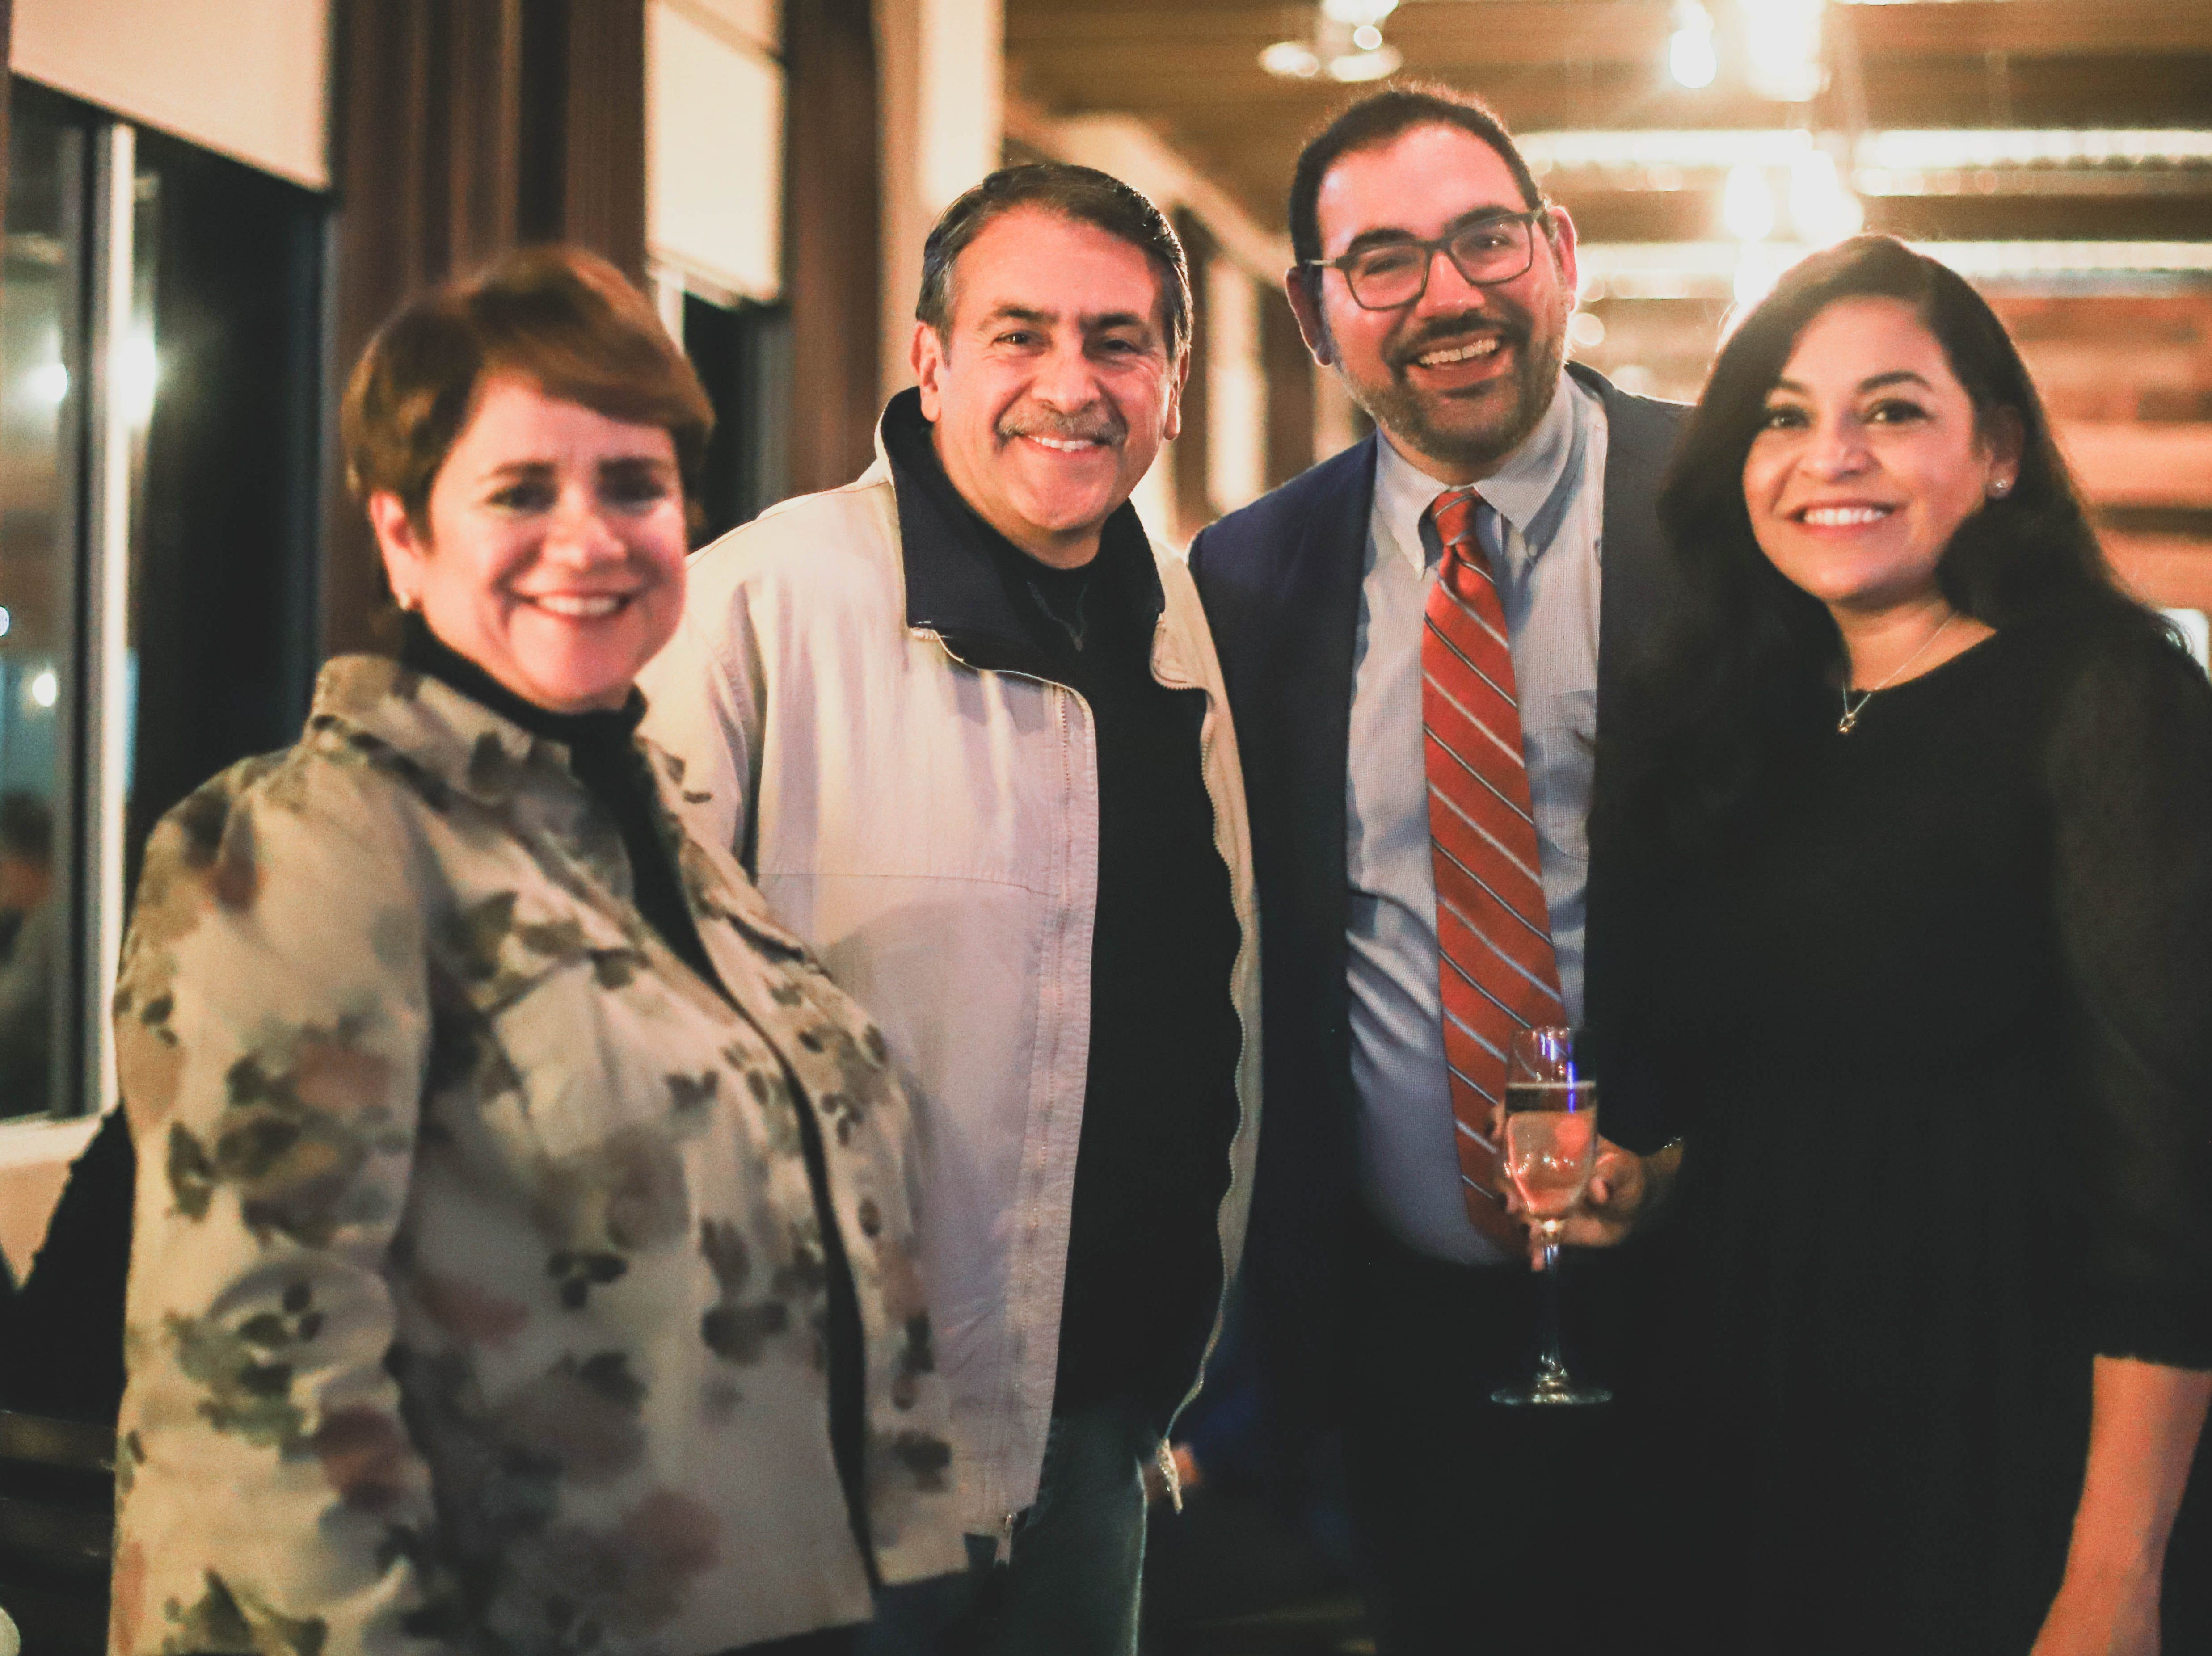 District 1 city Rep. Peter Svarzbein poses with his girlfriend,Tatiana Avila, District 7 city Rep. Henry Rivera andvolunteer Fabiola Campos-Neri at his election watch party Saturday, Dec. 15, 2018, at Holy Grail.